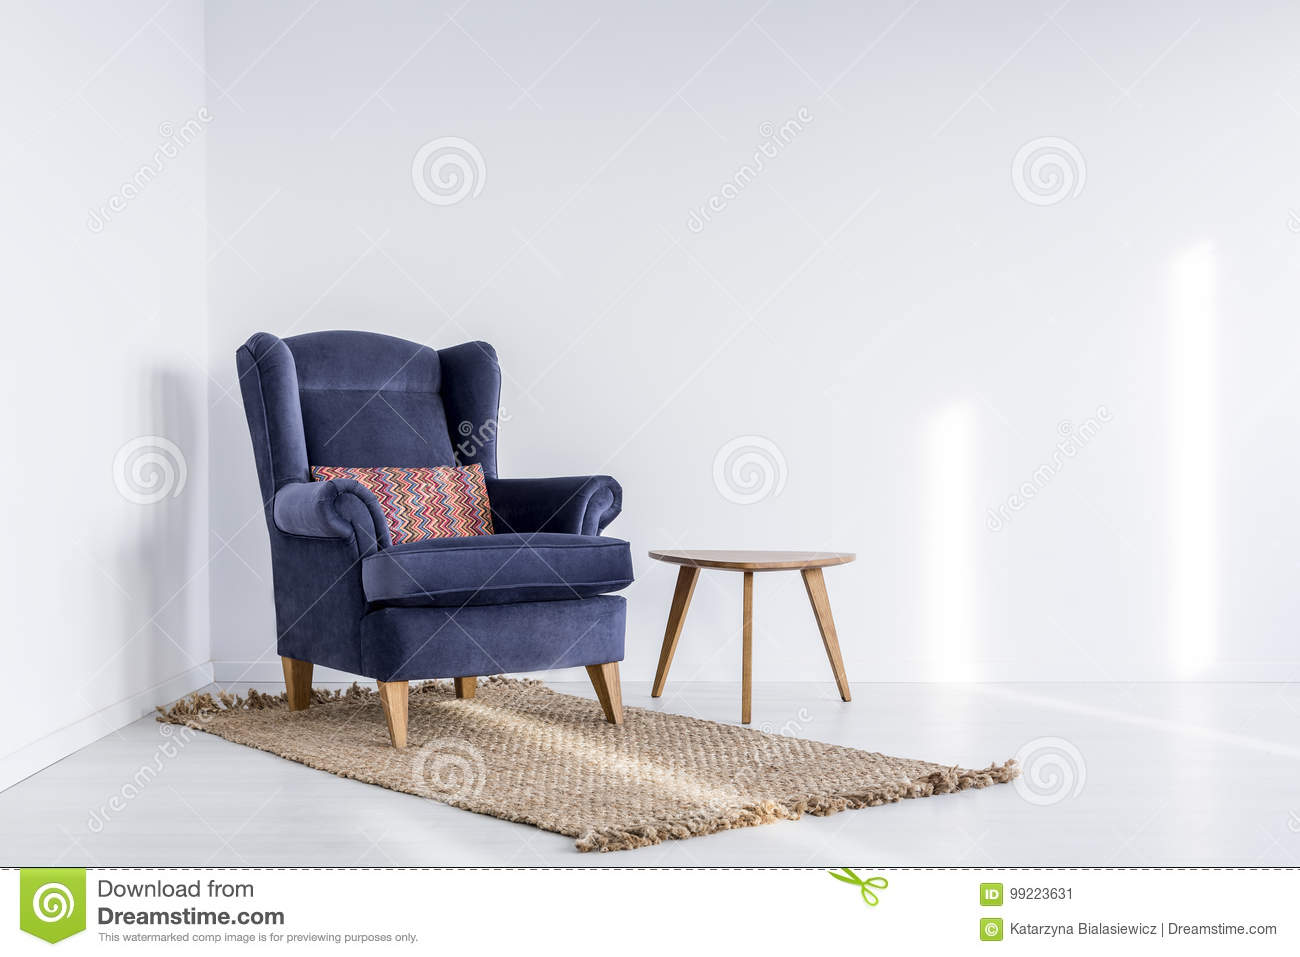 Dark blue armchair on brown carpet